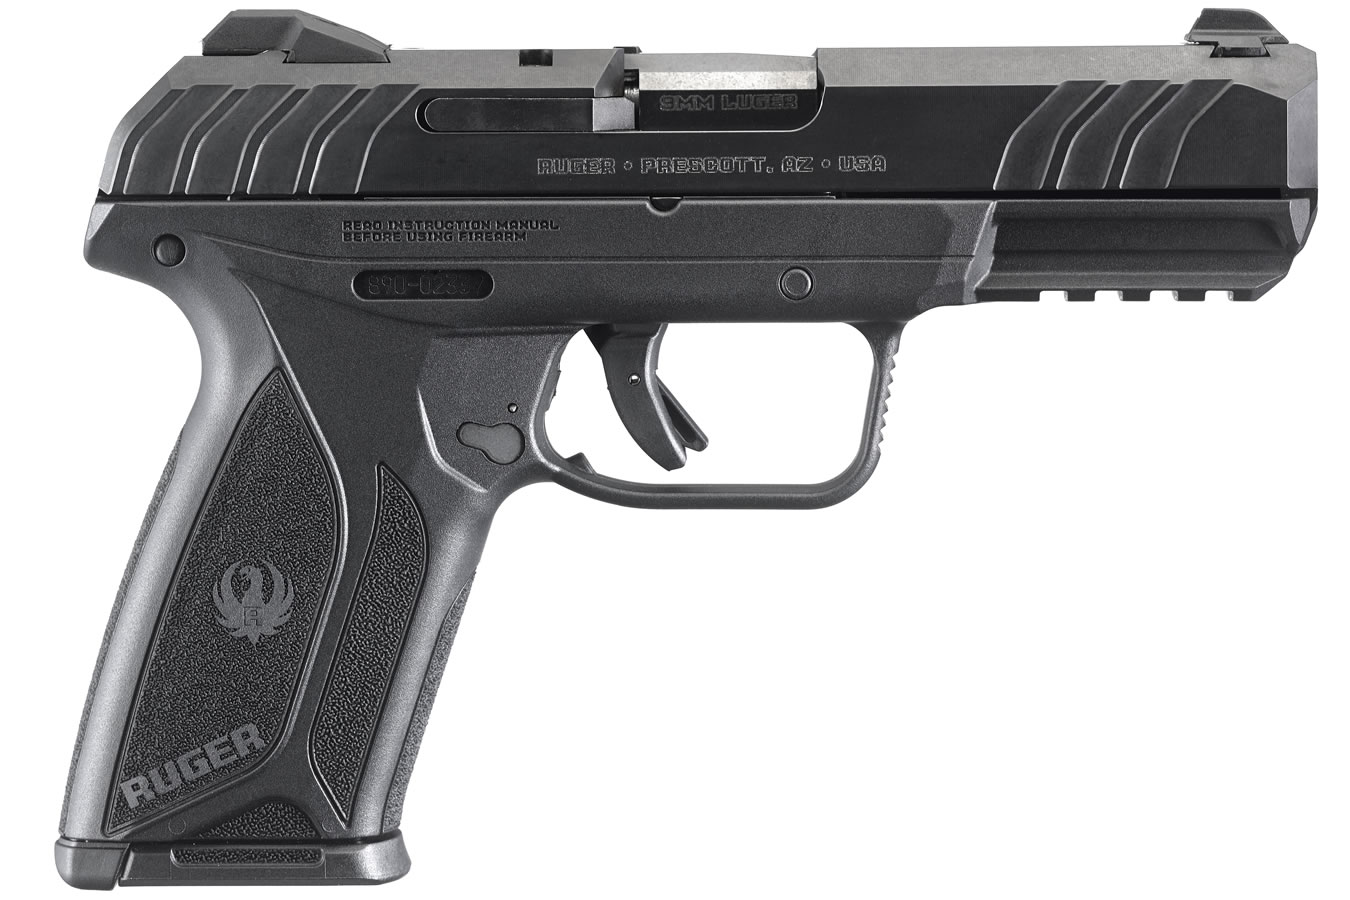 No. 18 Best Selling: RUGER SECURITY-9 9MM PISTOL